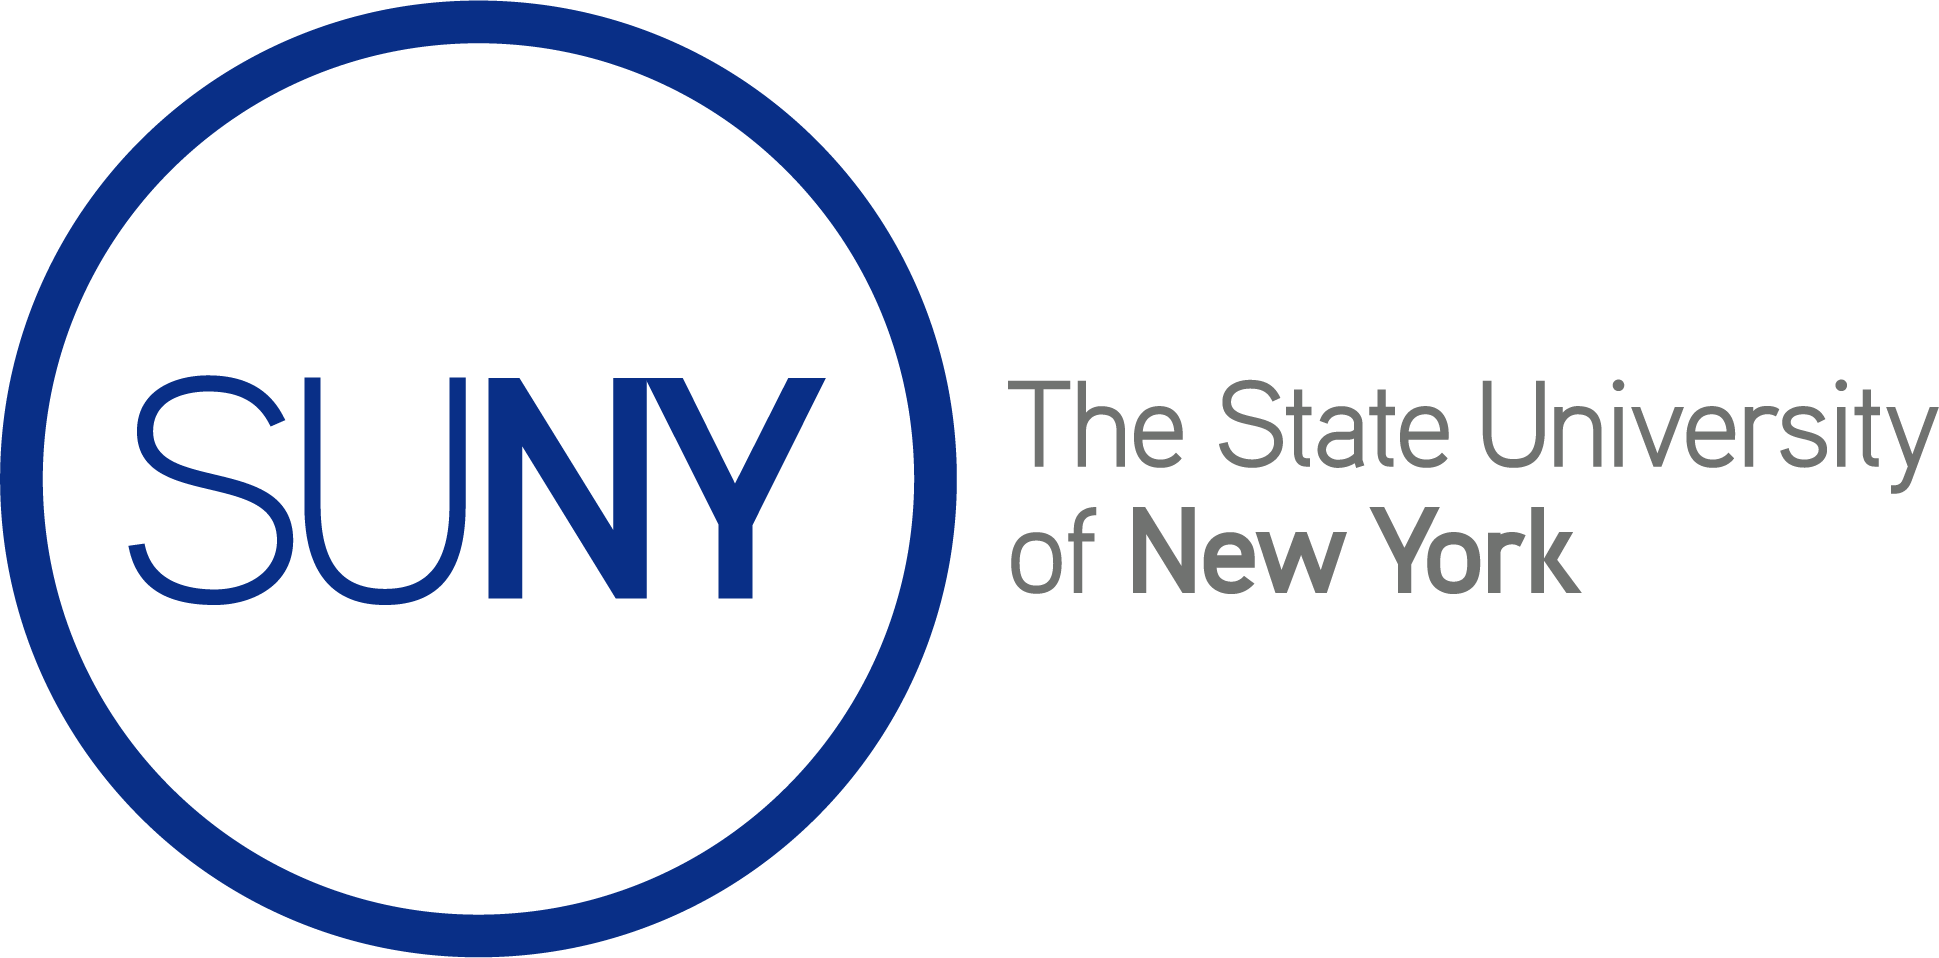 SUNY The State University of New York Brand Mark